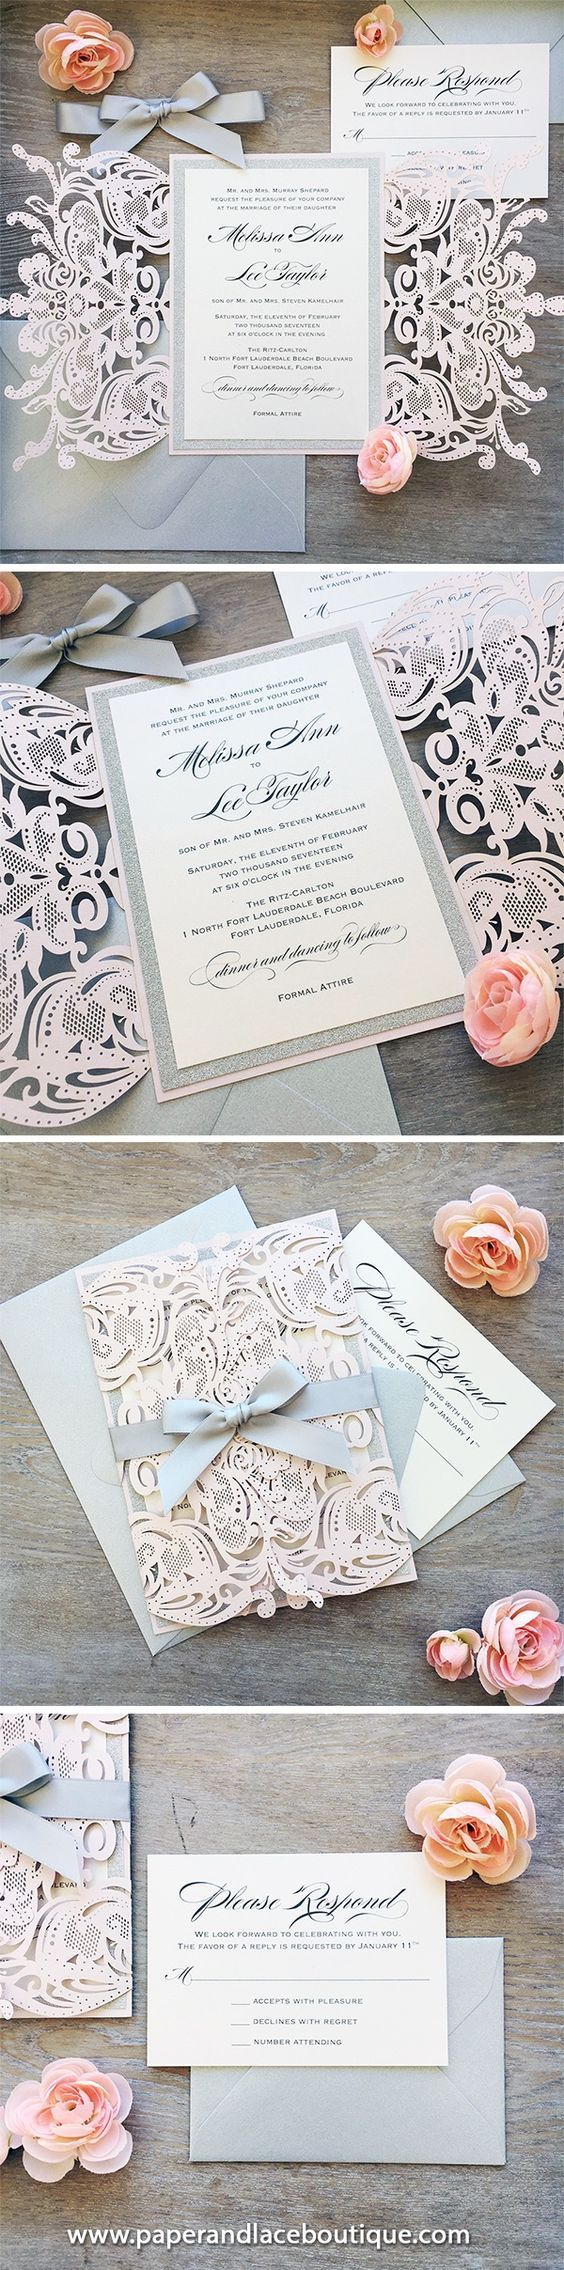 37 Best Wedding Invites Images On Pinterest Invites Invitation